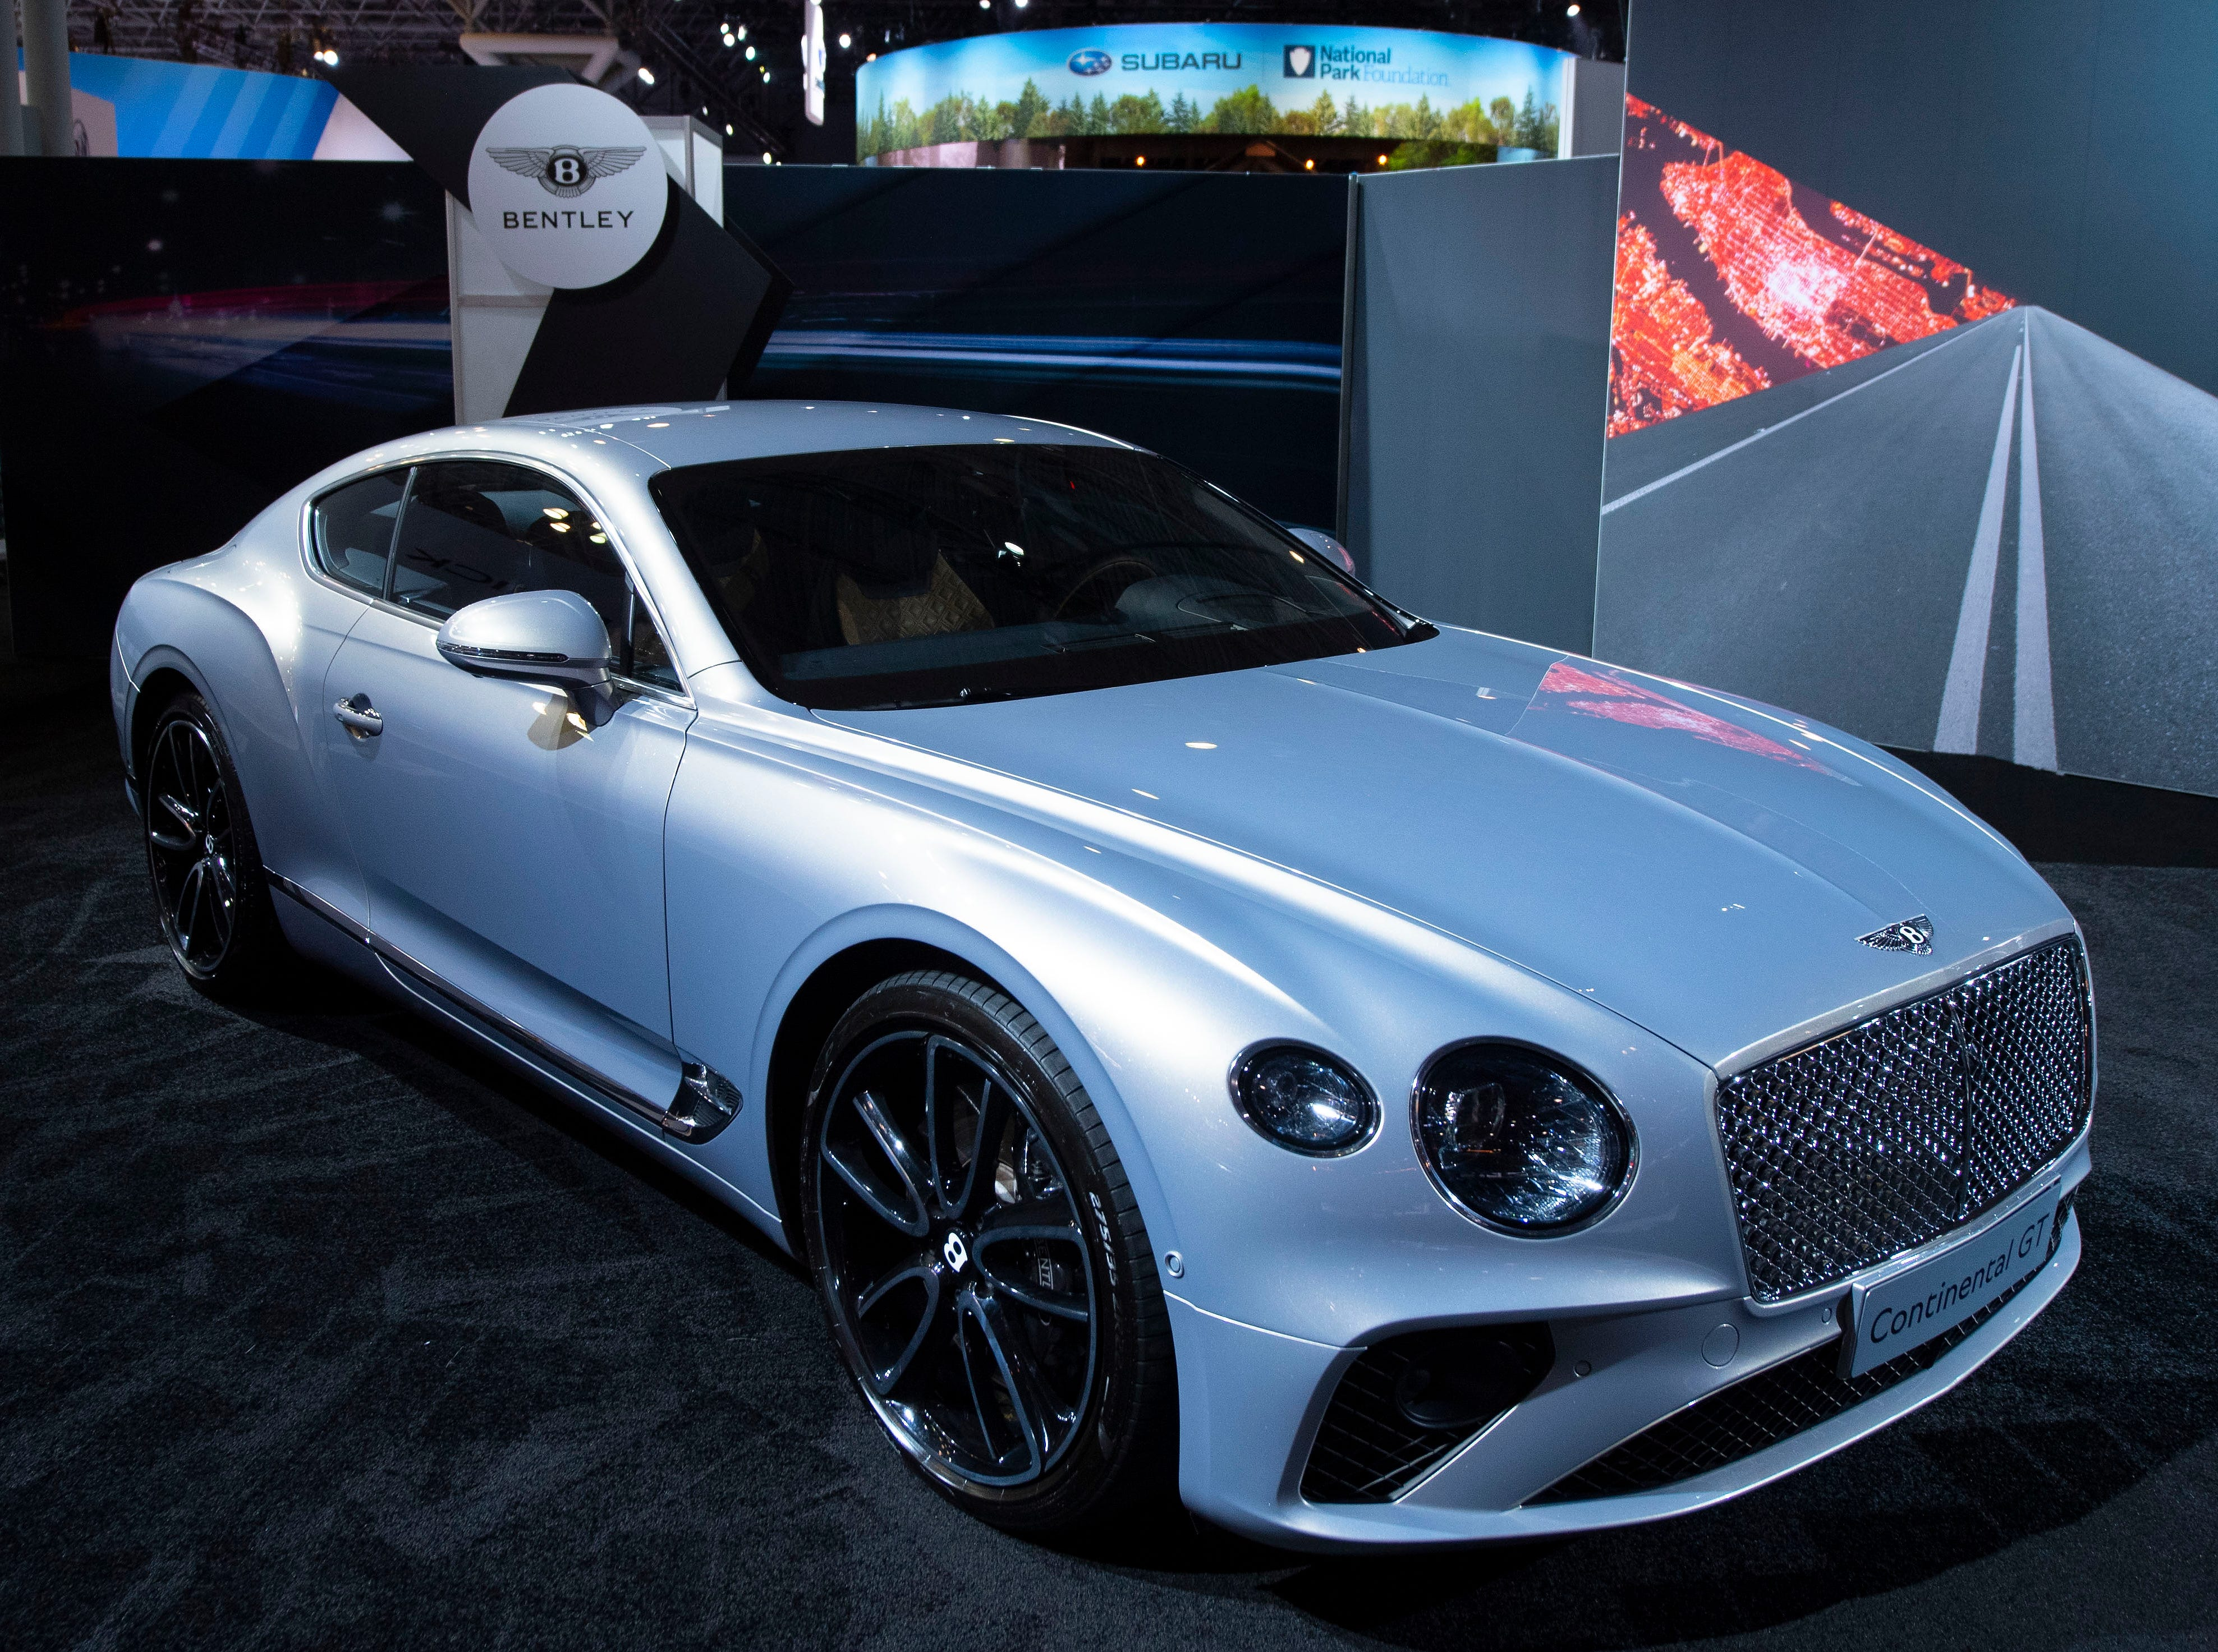 A Bentley Continental GT is one of the exotic cars are on display at the New York International Auto Show.